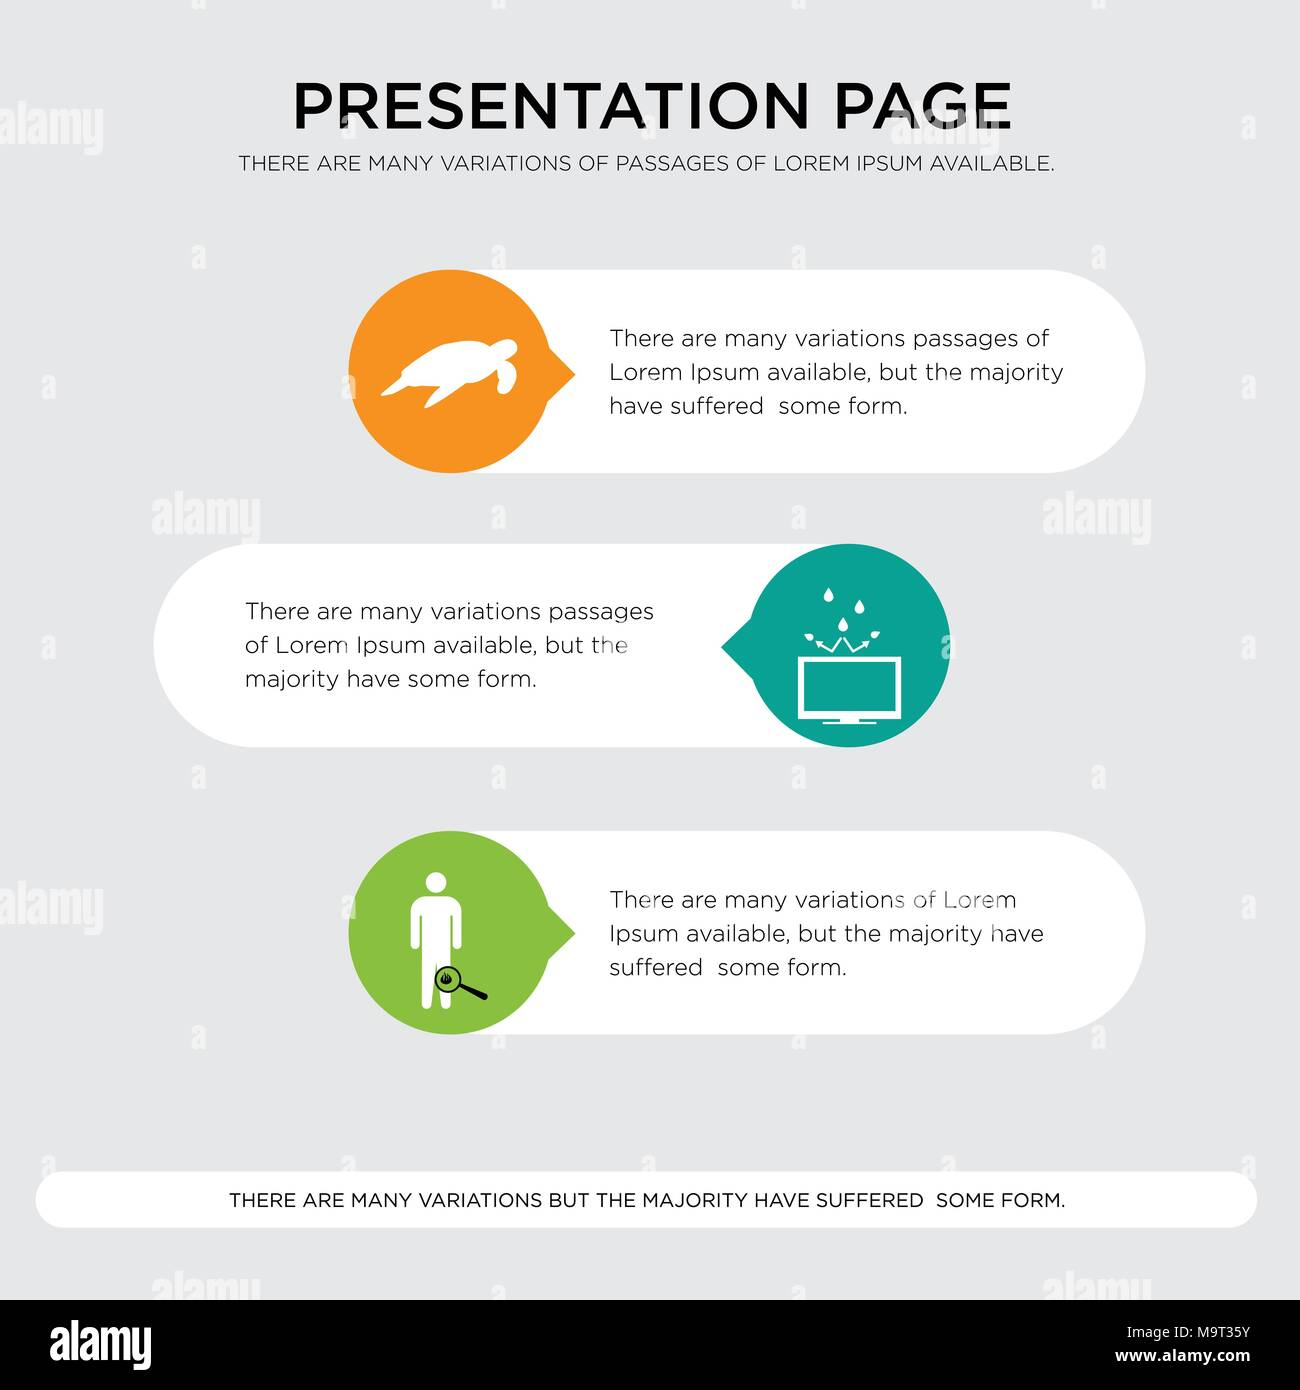 Inflammation Resistant Sea Turtle Presentation Design Template In